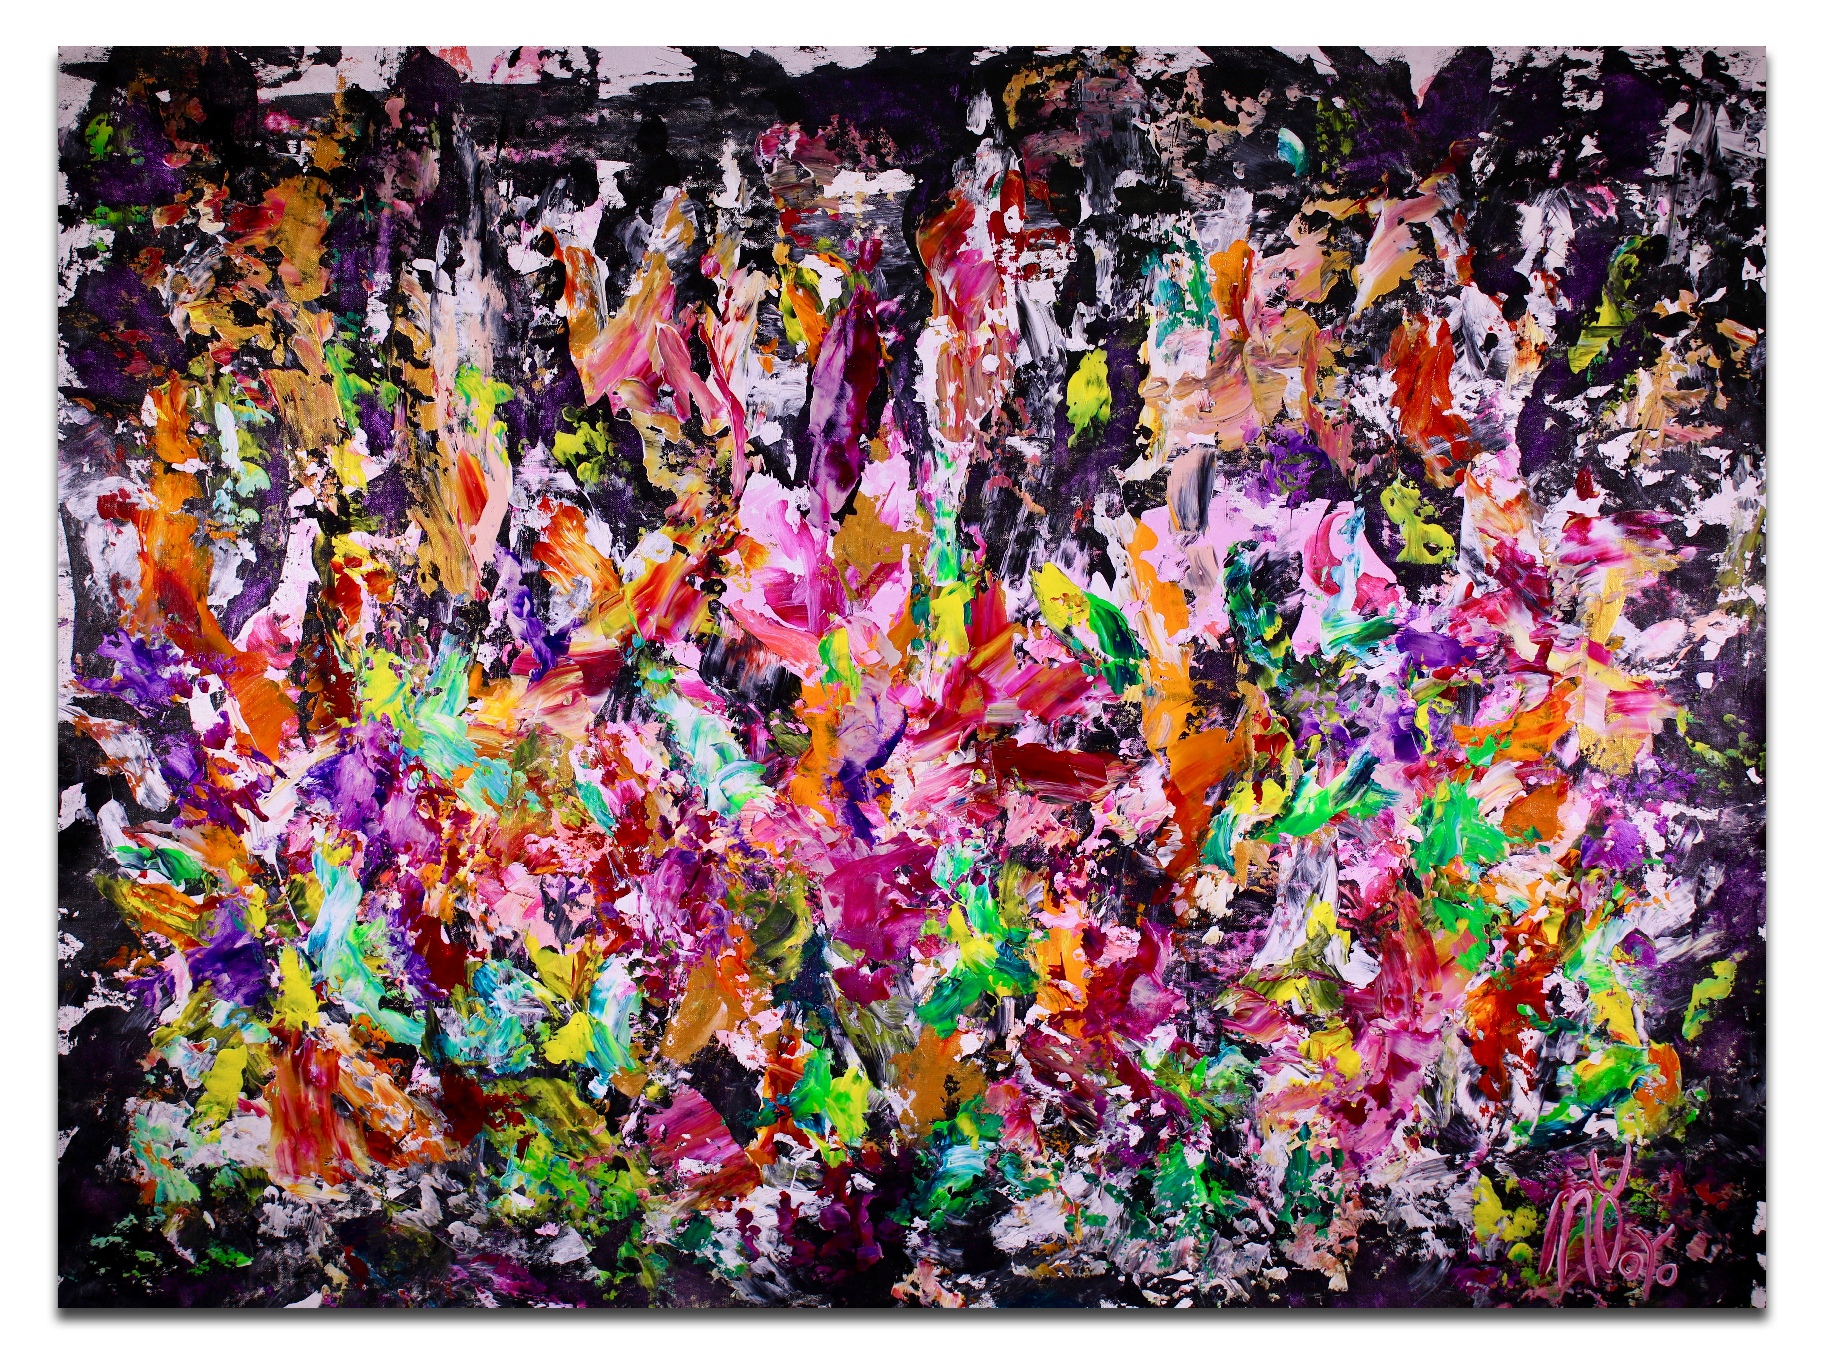 A night of secrets 2 (2018) Abstract Expressionist Acrylic painting by Nestor Toro